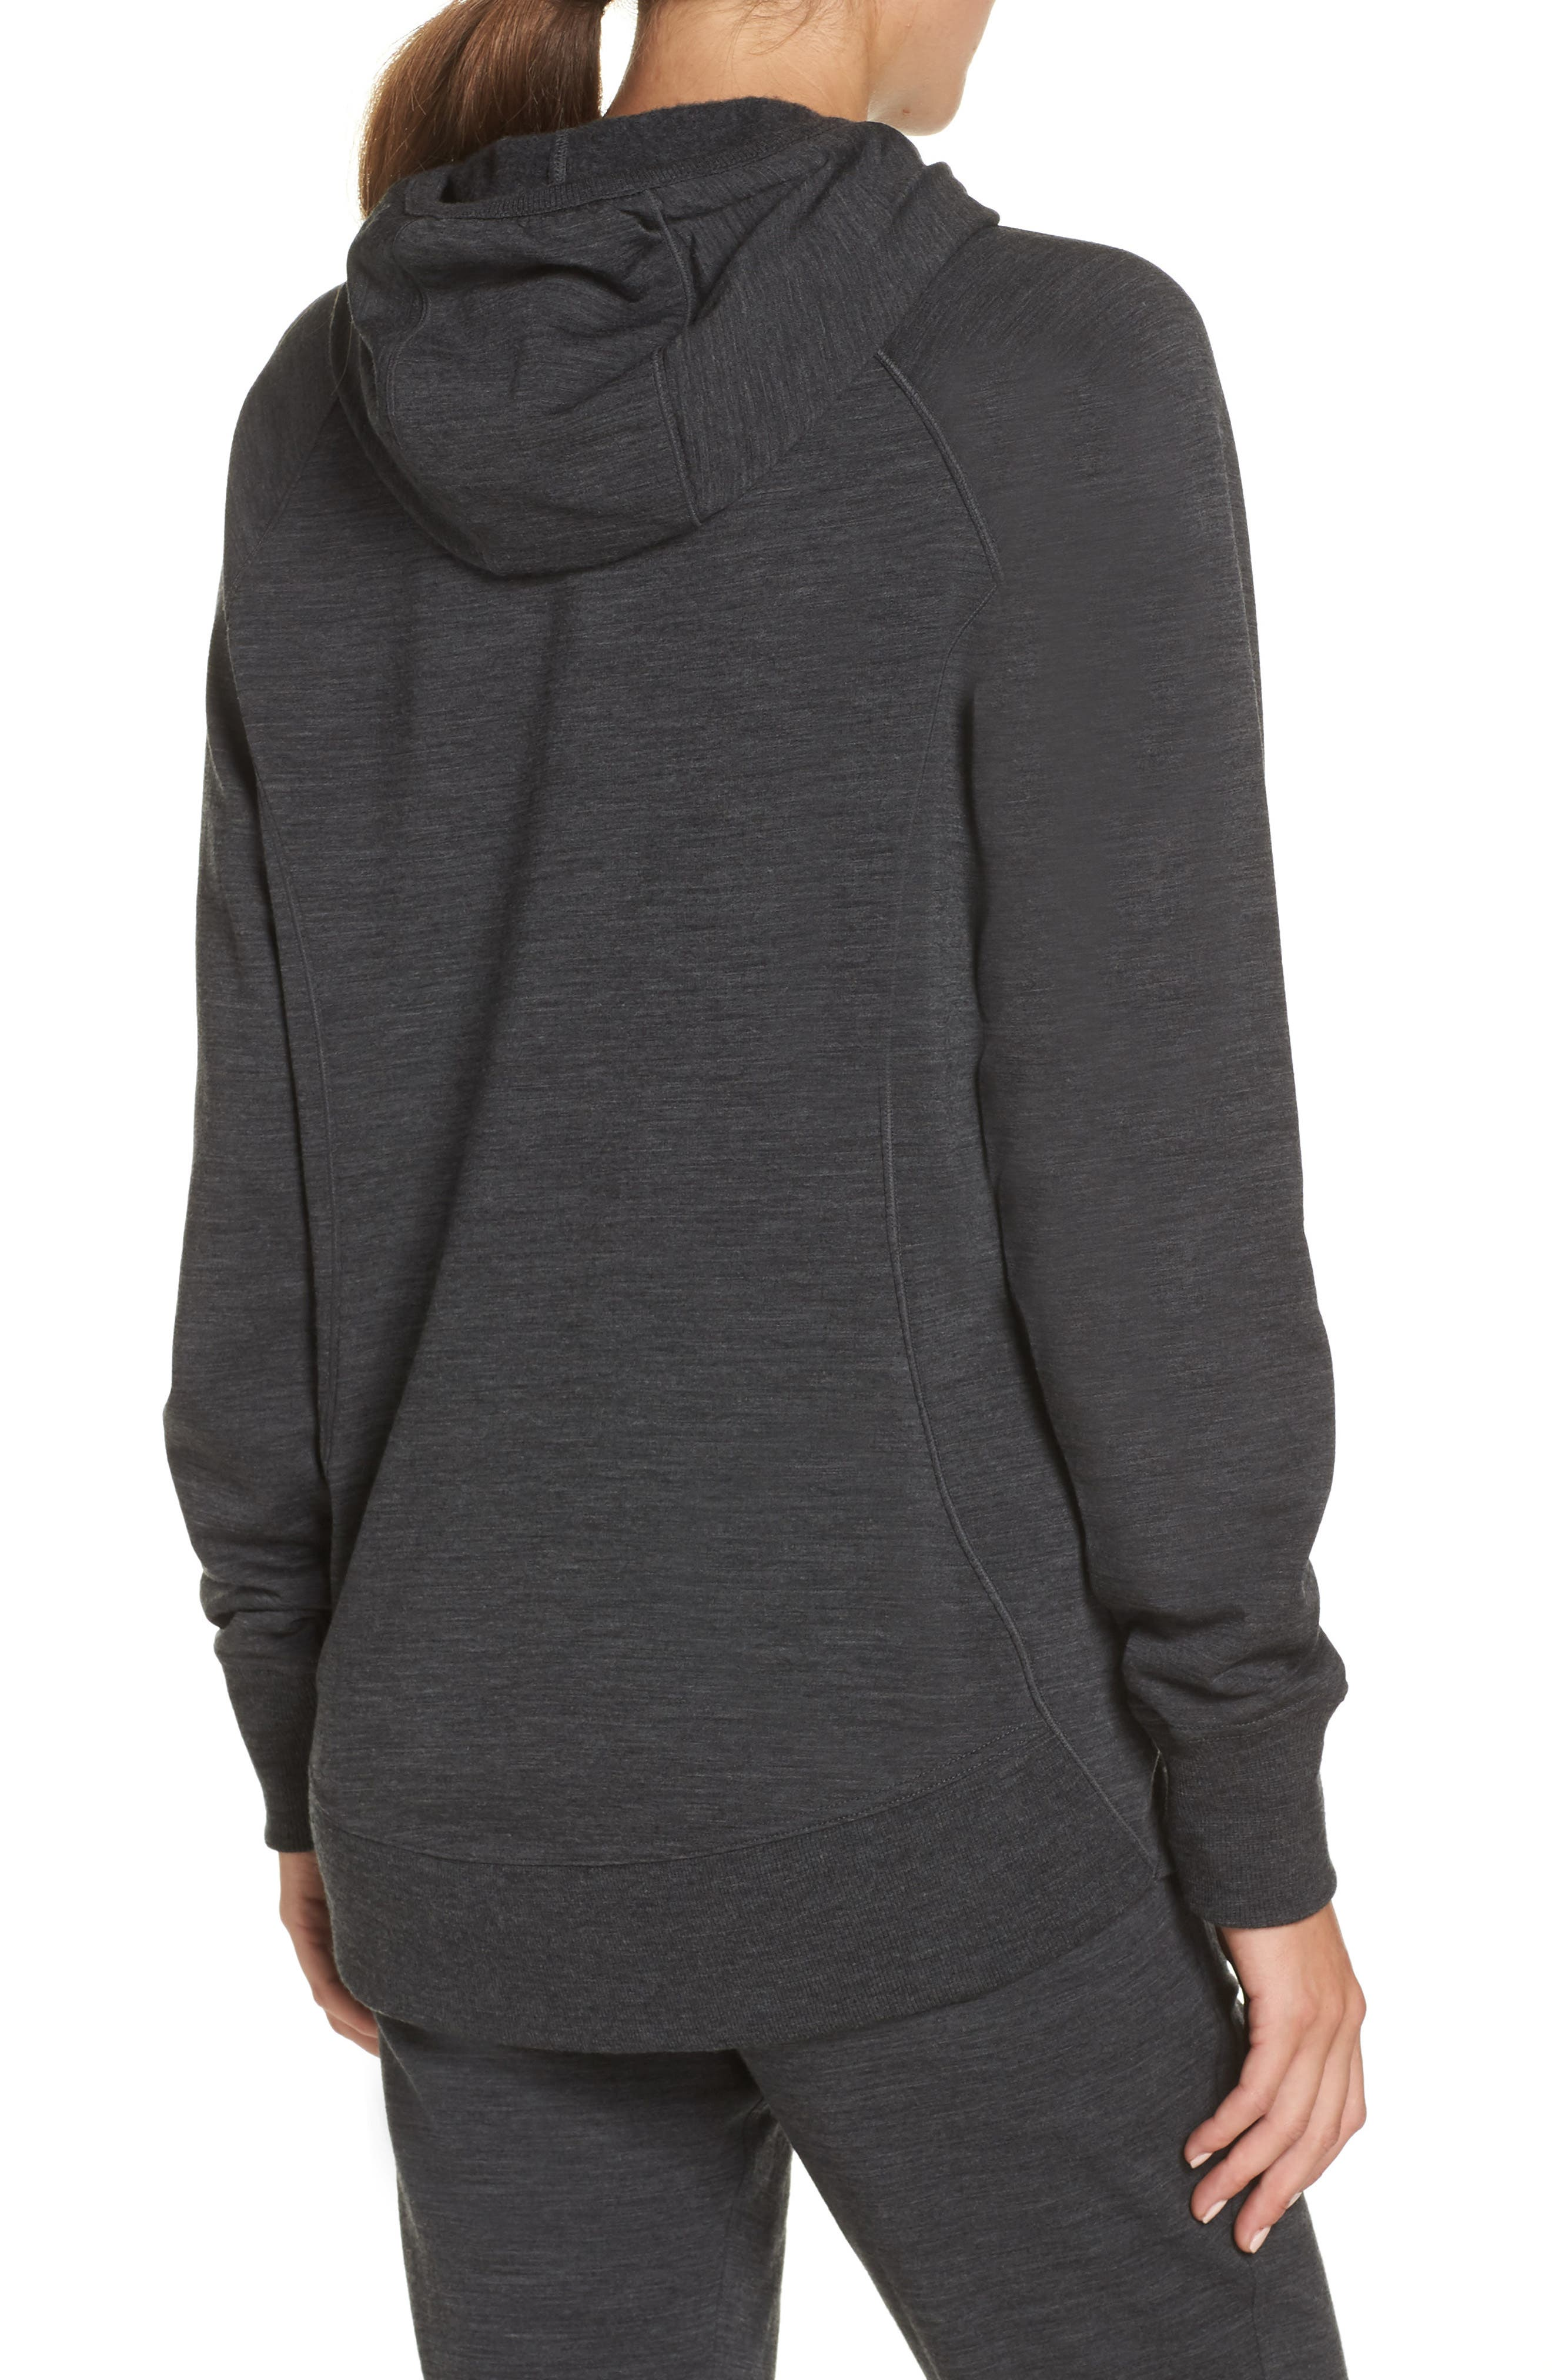 ICEBREAKER,                             Dia RealFLEECE<sup>®</sup> Pullover Hoodie,                             Alternate thumbnail 2, color,                             JET HEATHER